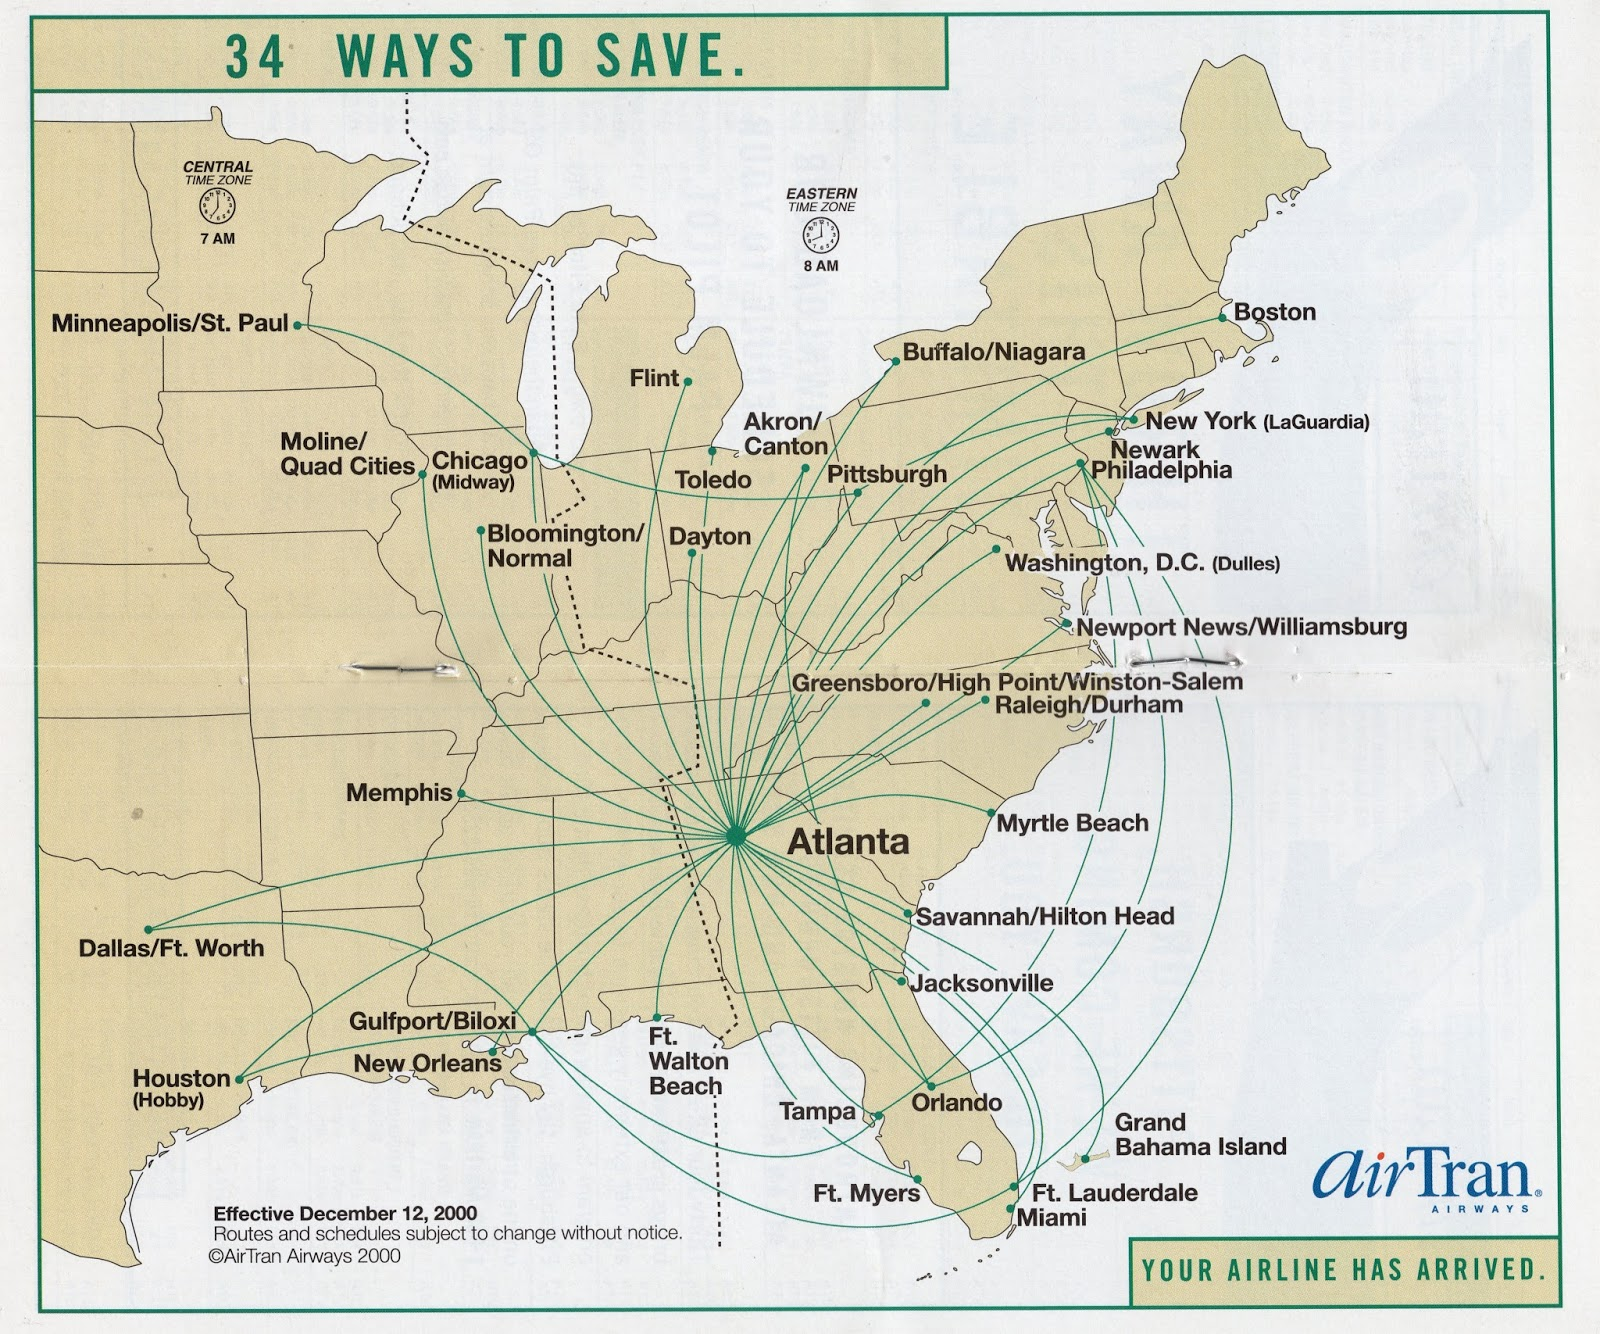 a funny commercial from airtran